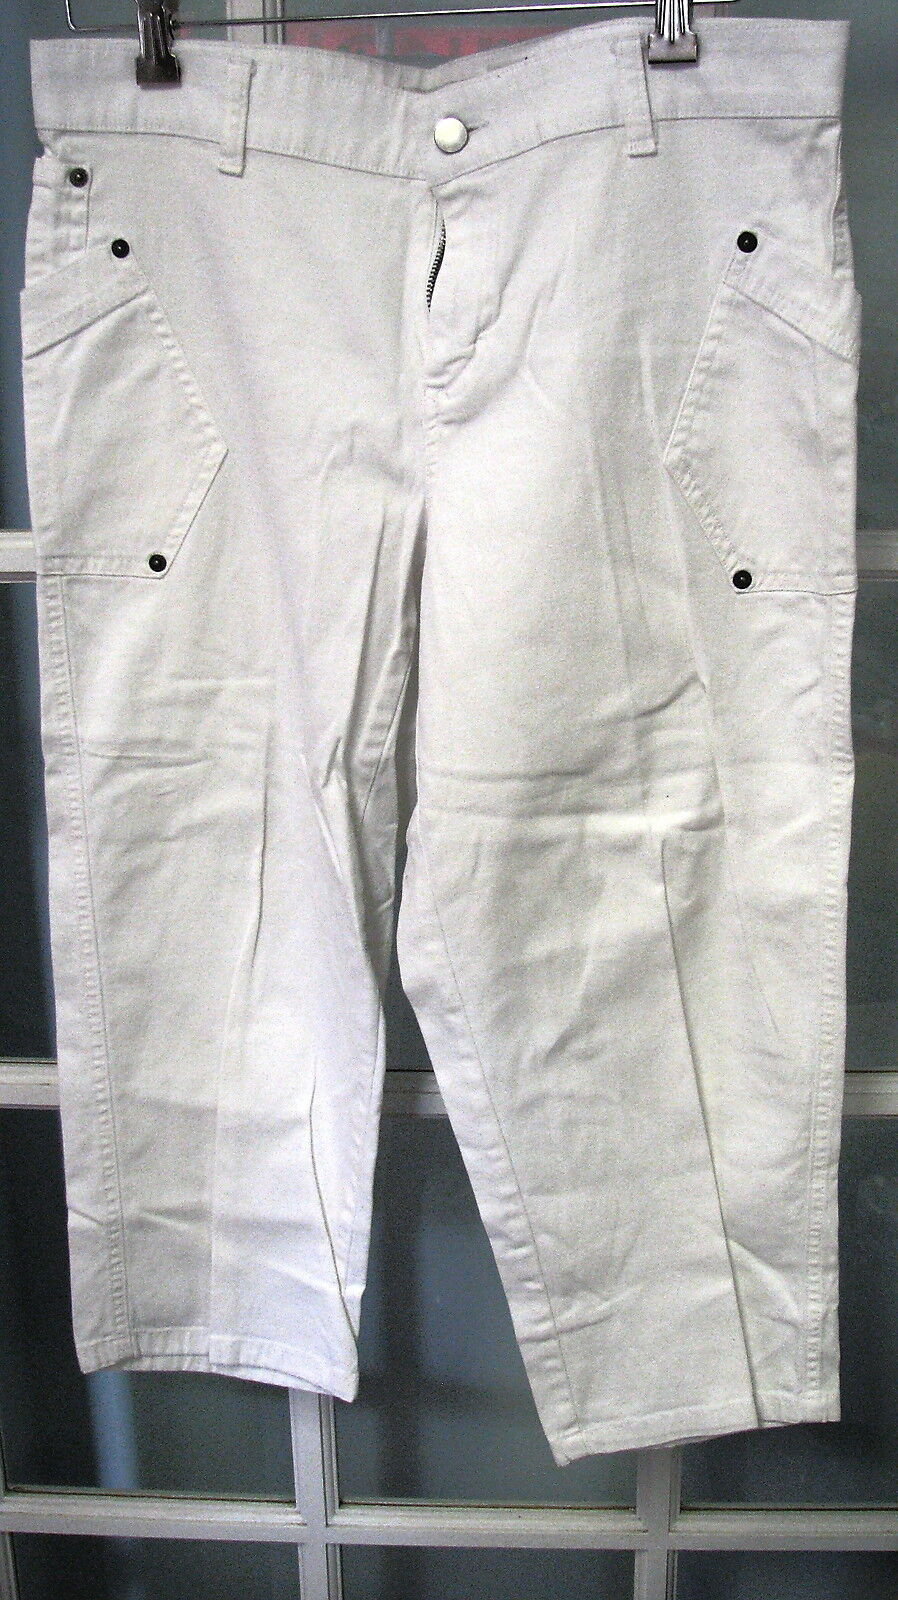 Covington white ladies capris size 10 womens  stretch cotton NWOT pants Medium